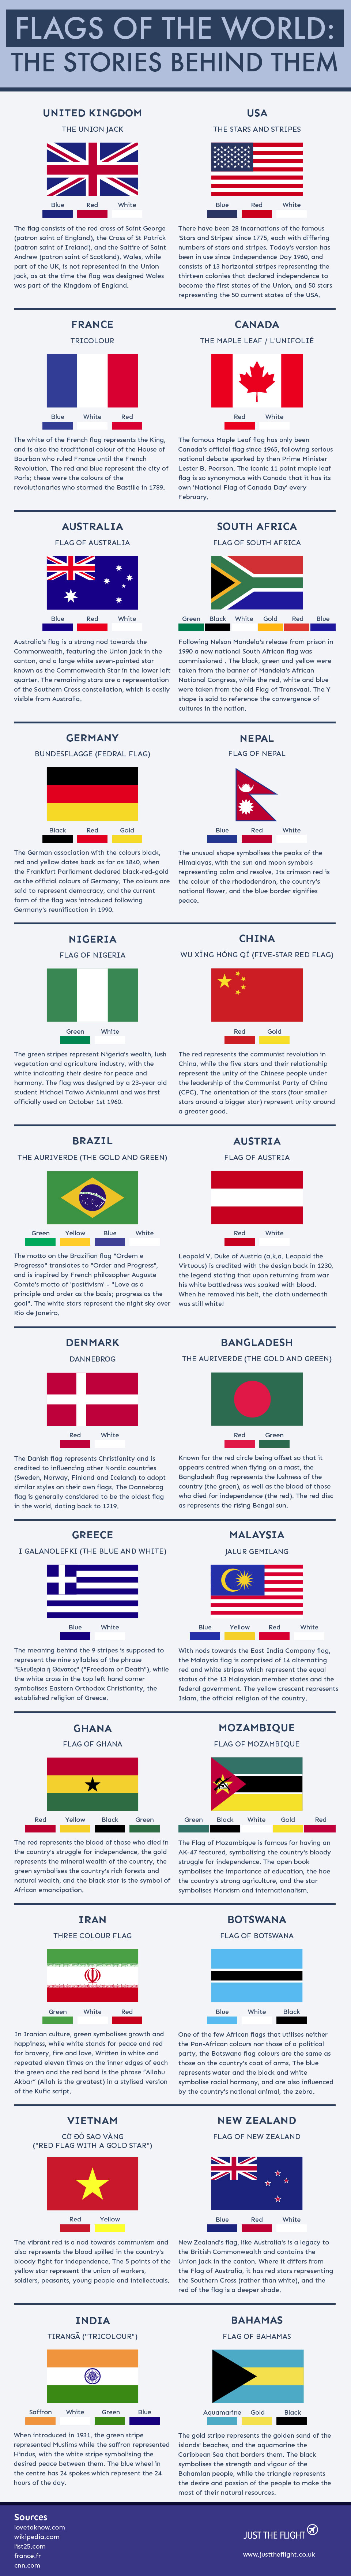 Flags of the World: The stories behind them